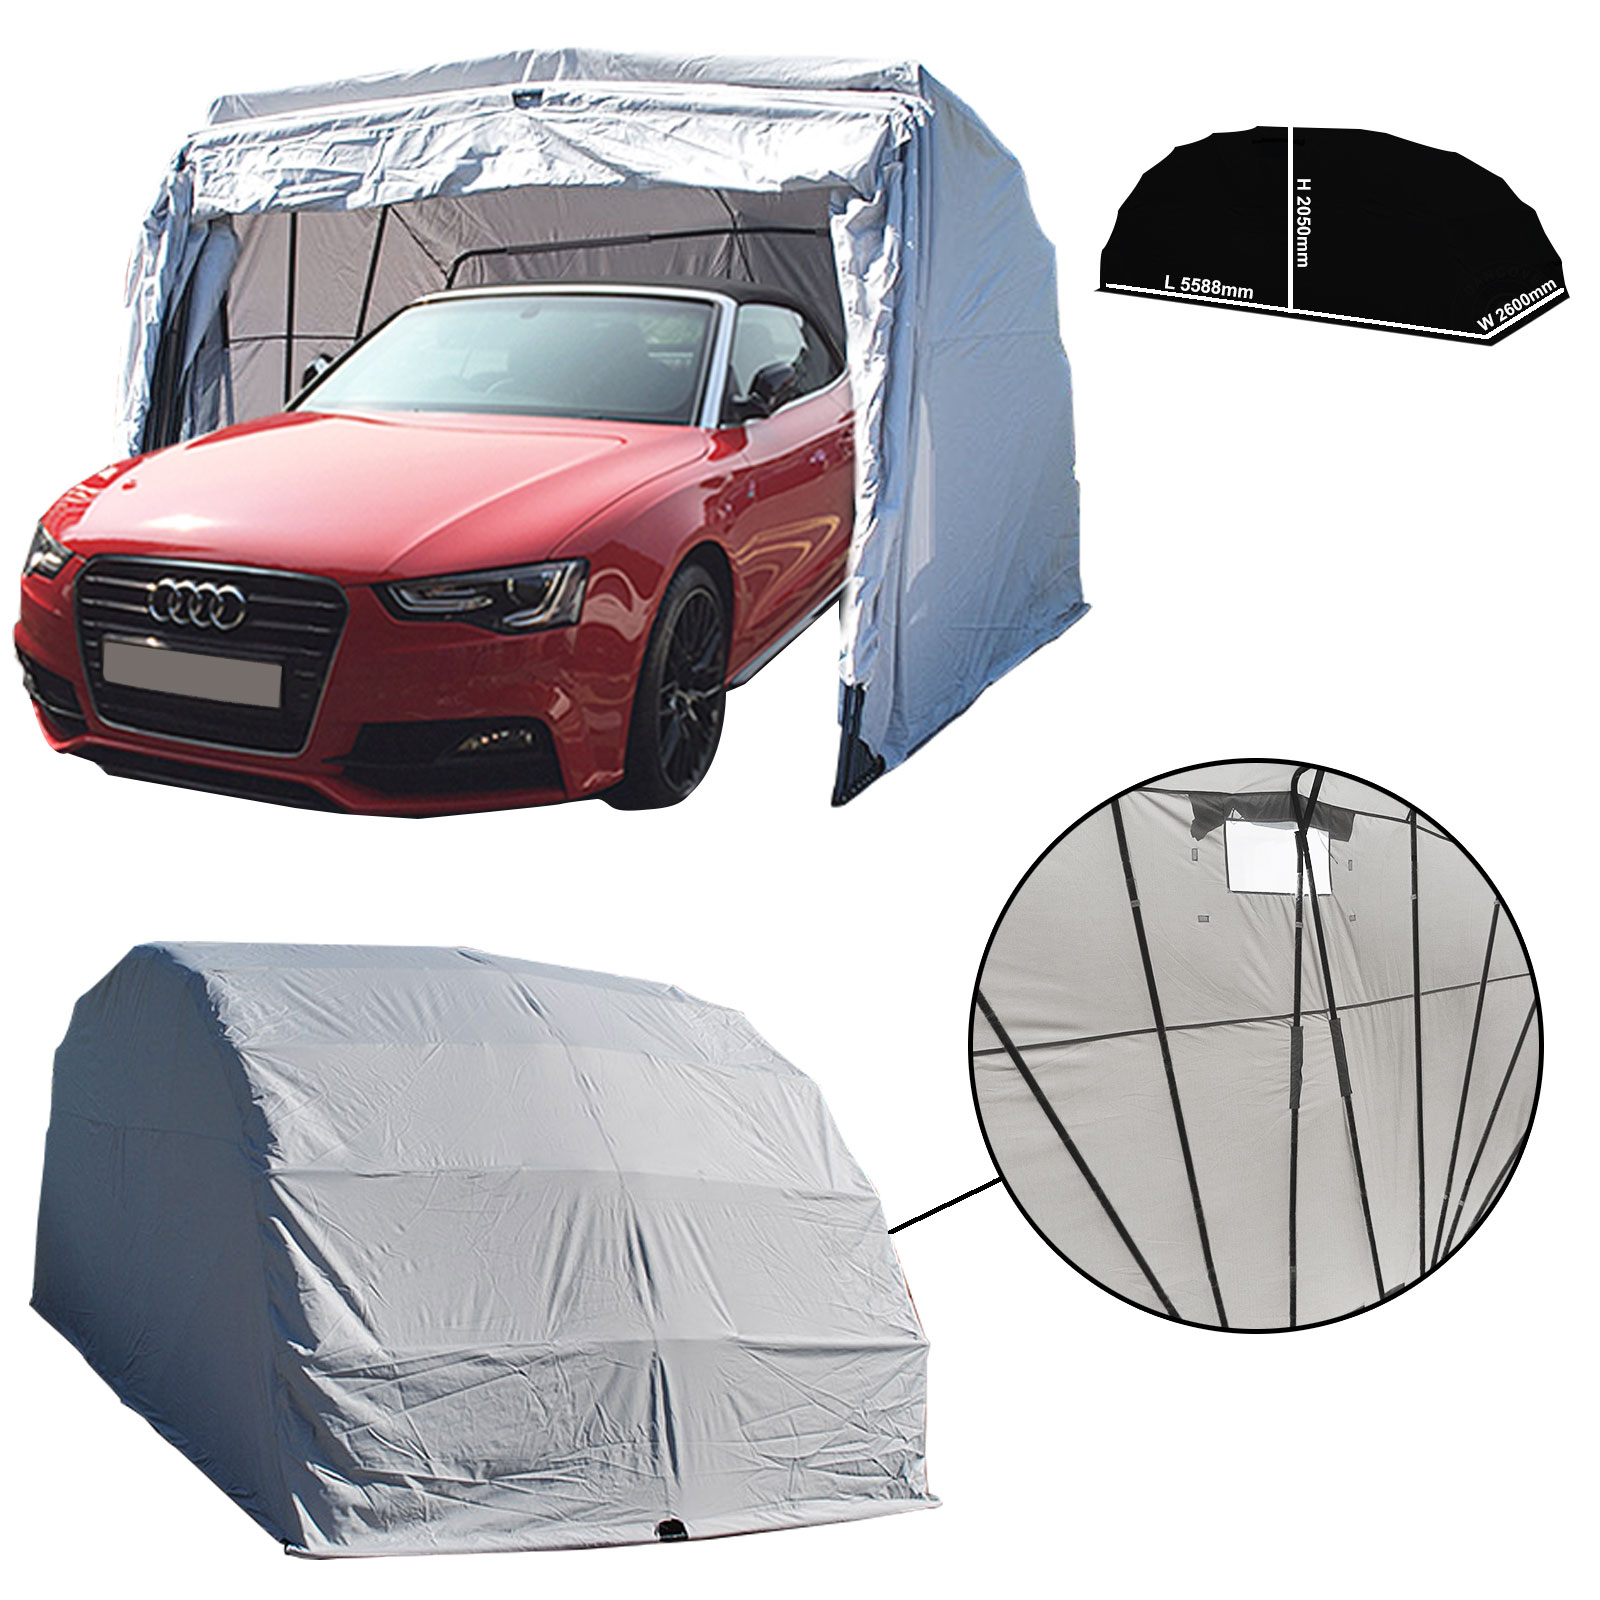 Collapsible Car Shelter : Portable folding waterproof car shelter tent cover port